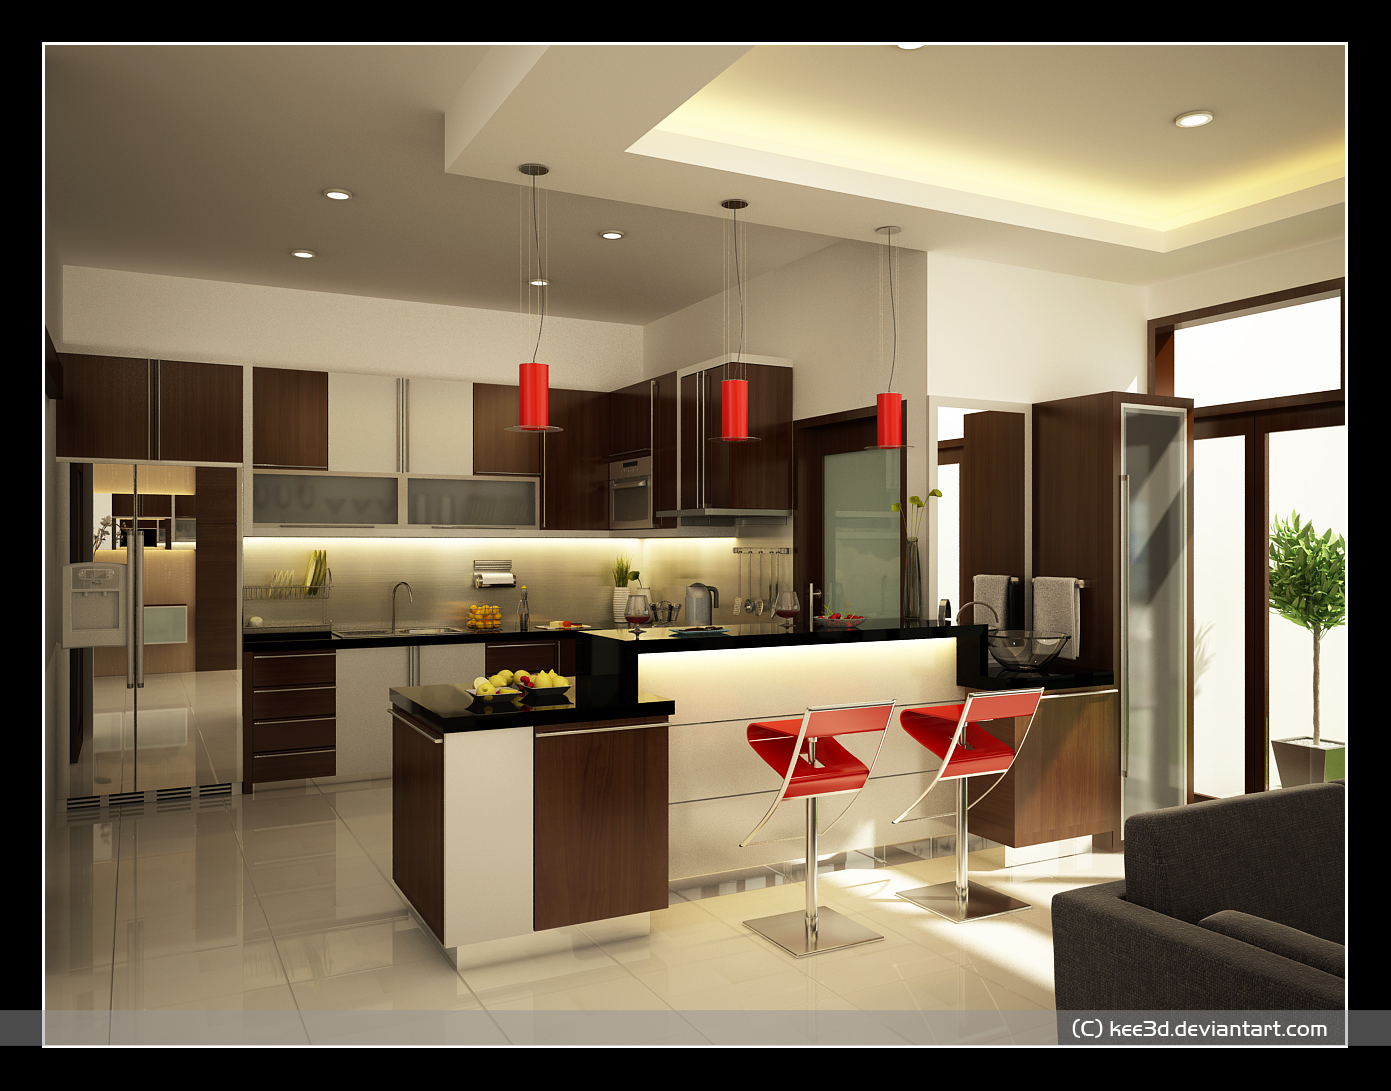 Home interior design decor kitchen design ideas set 2 for Interior design ideas for kitchen